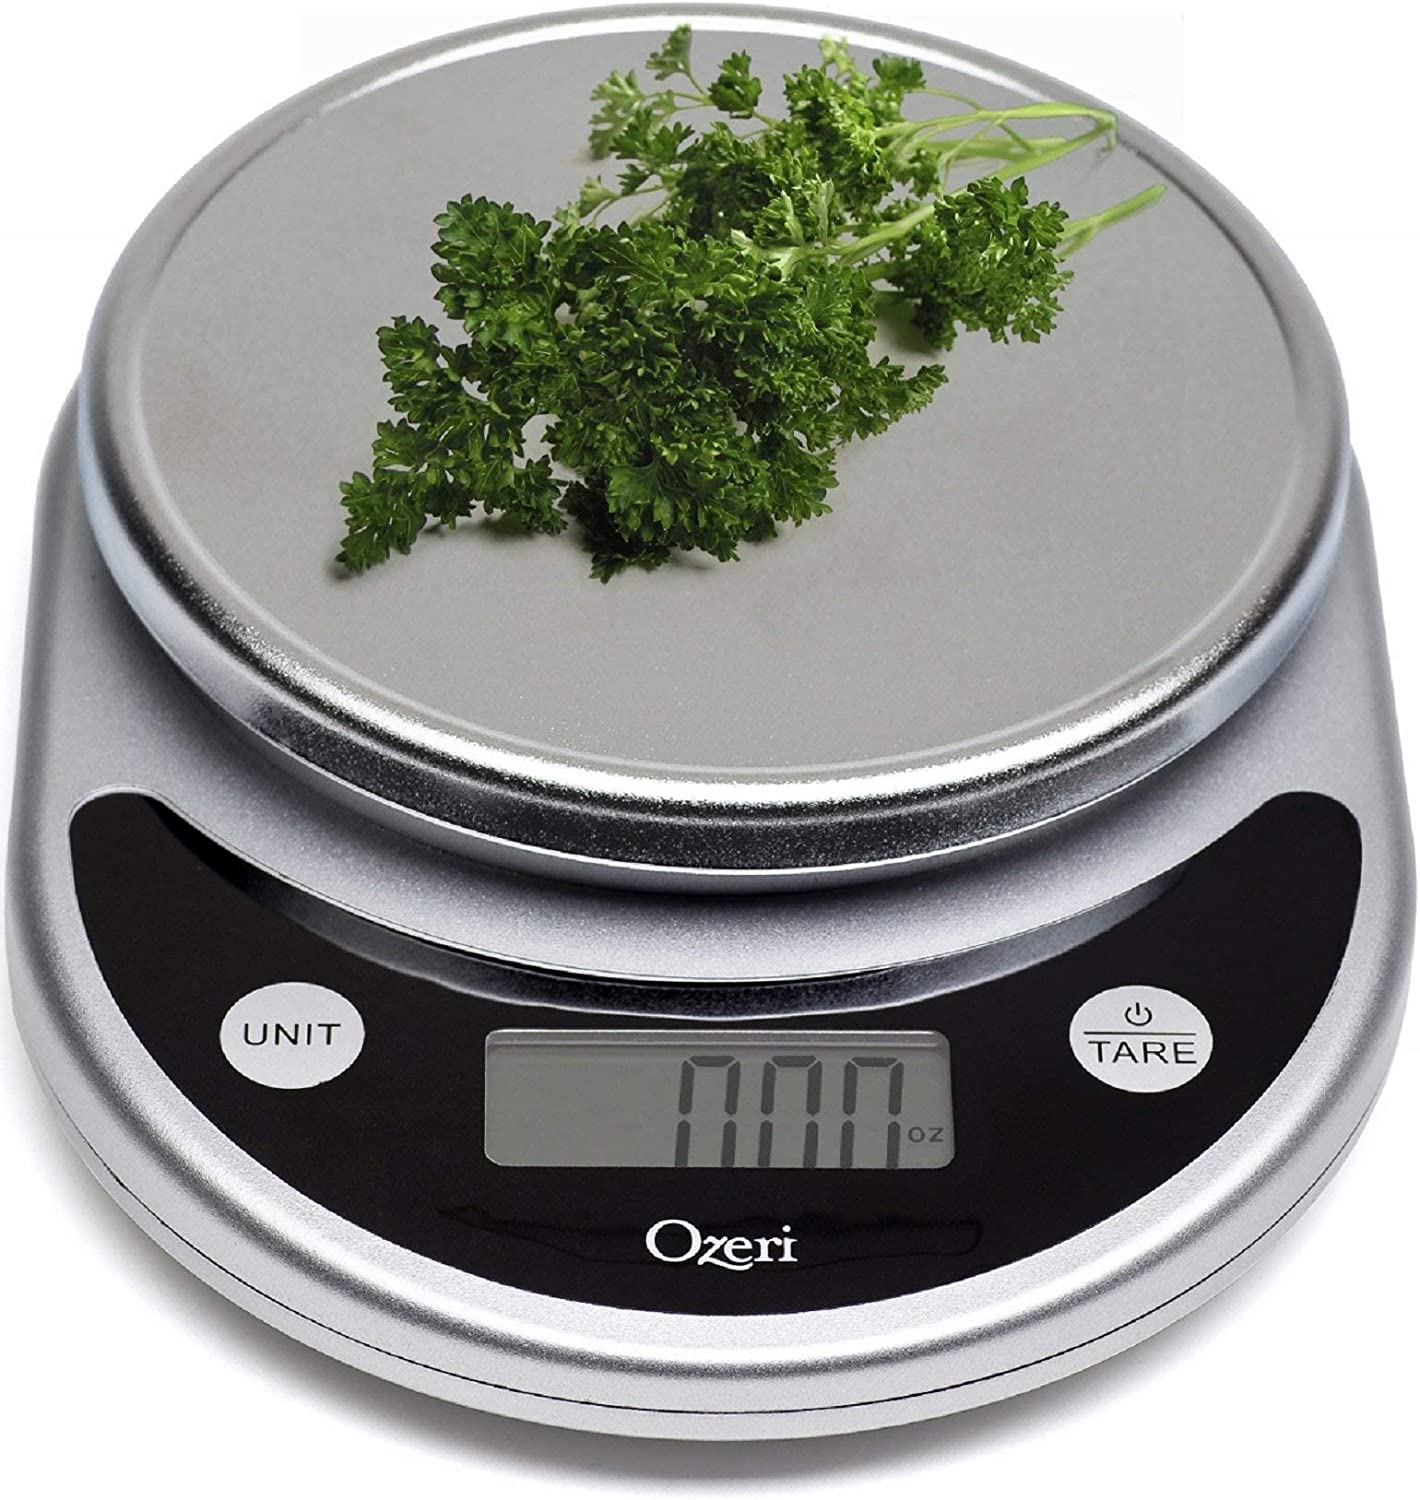 Digital Multifunction Kitchen 70% OFF Outlet and Free shipping on posting reviews Food Scale